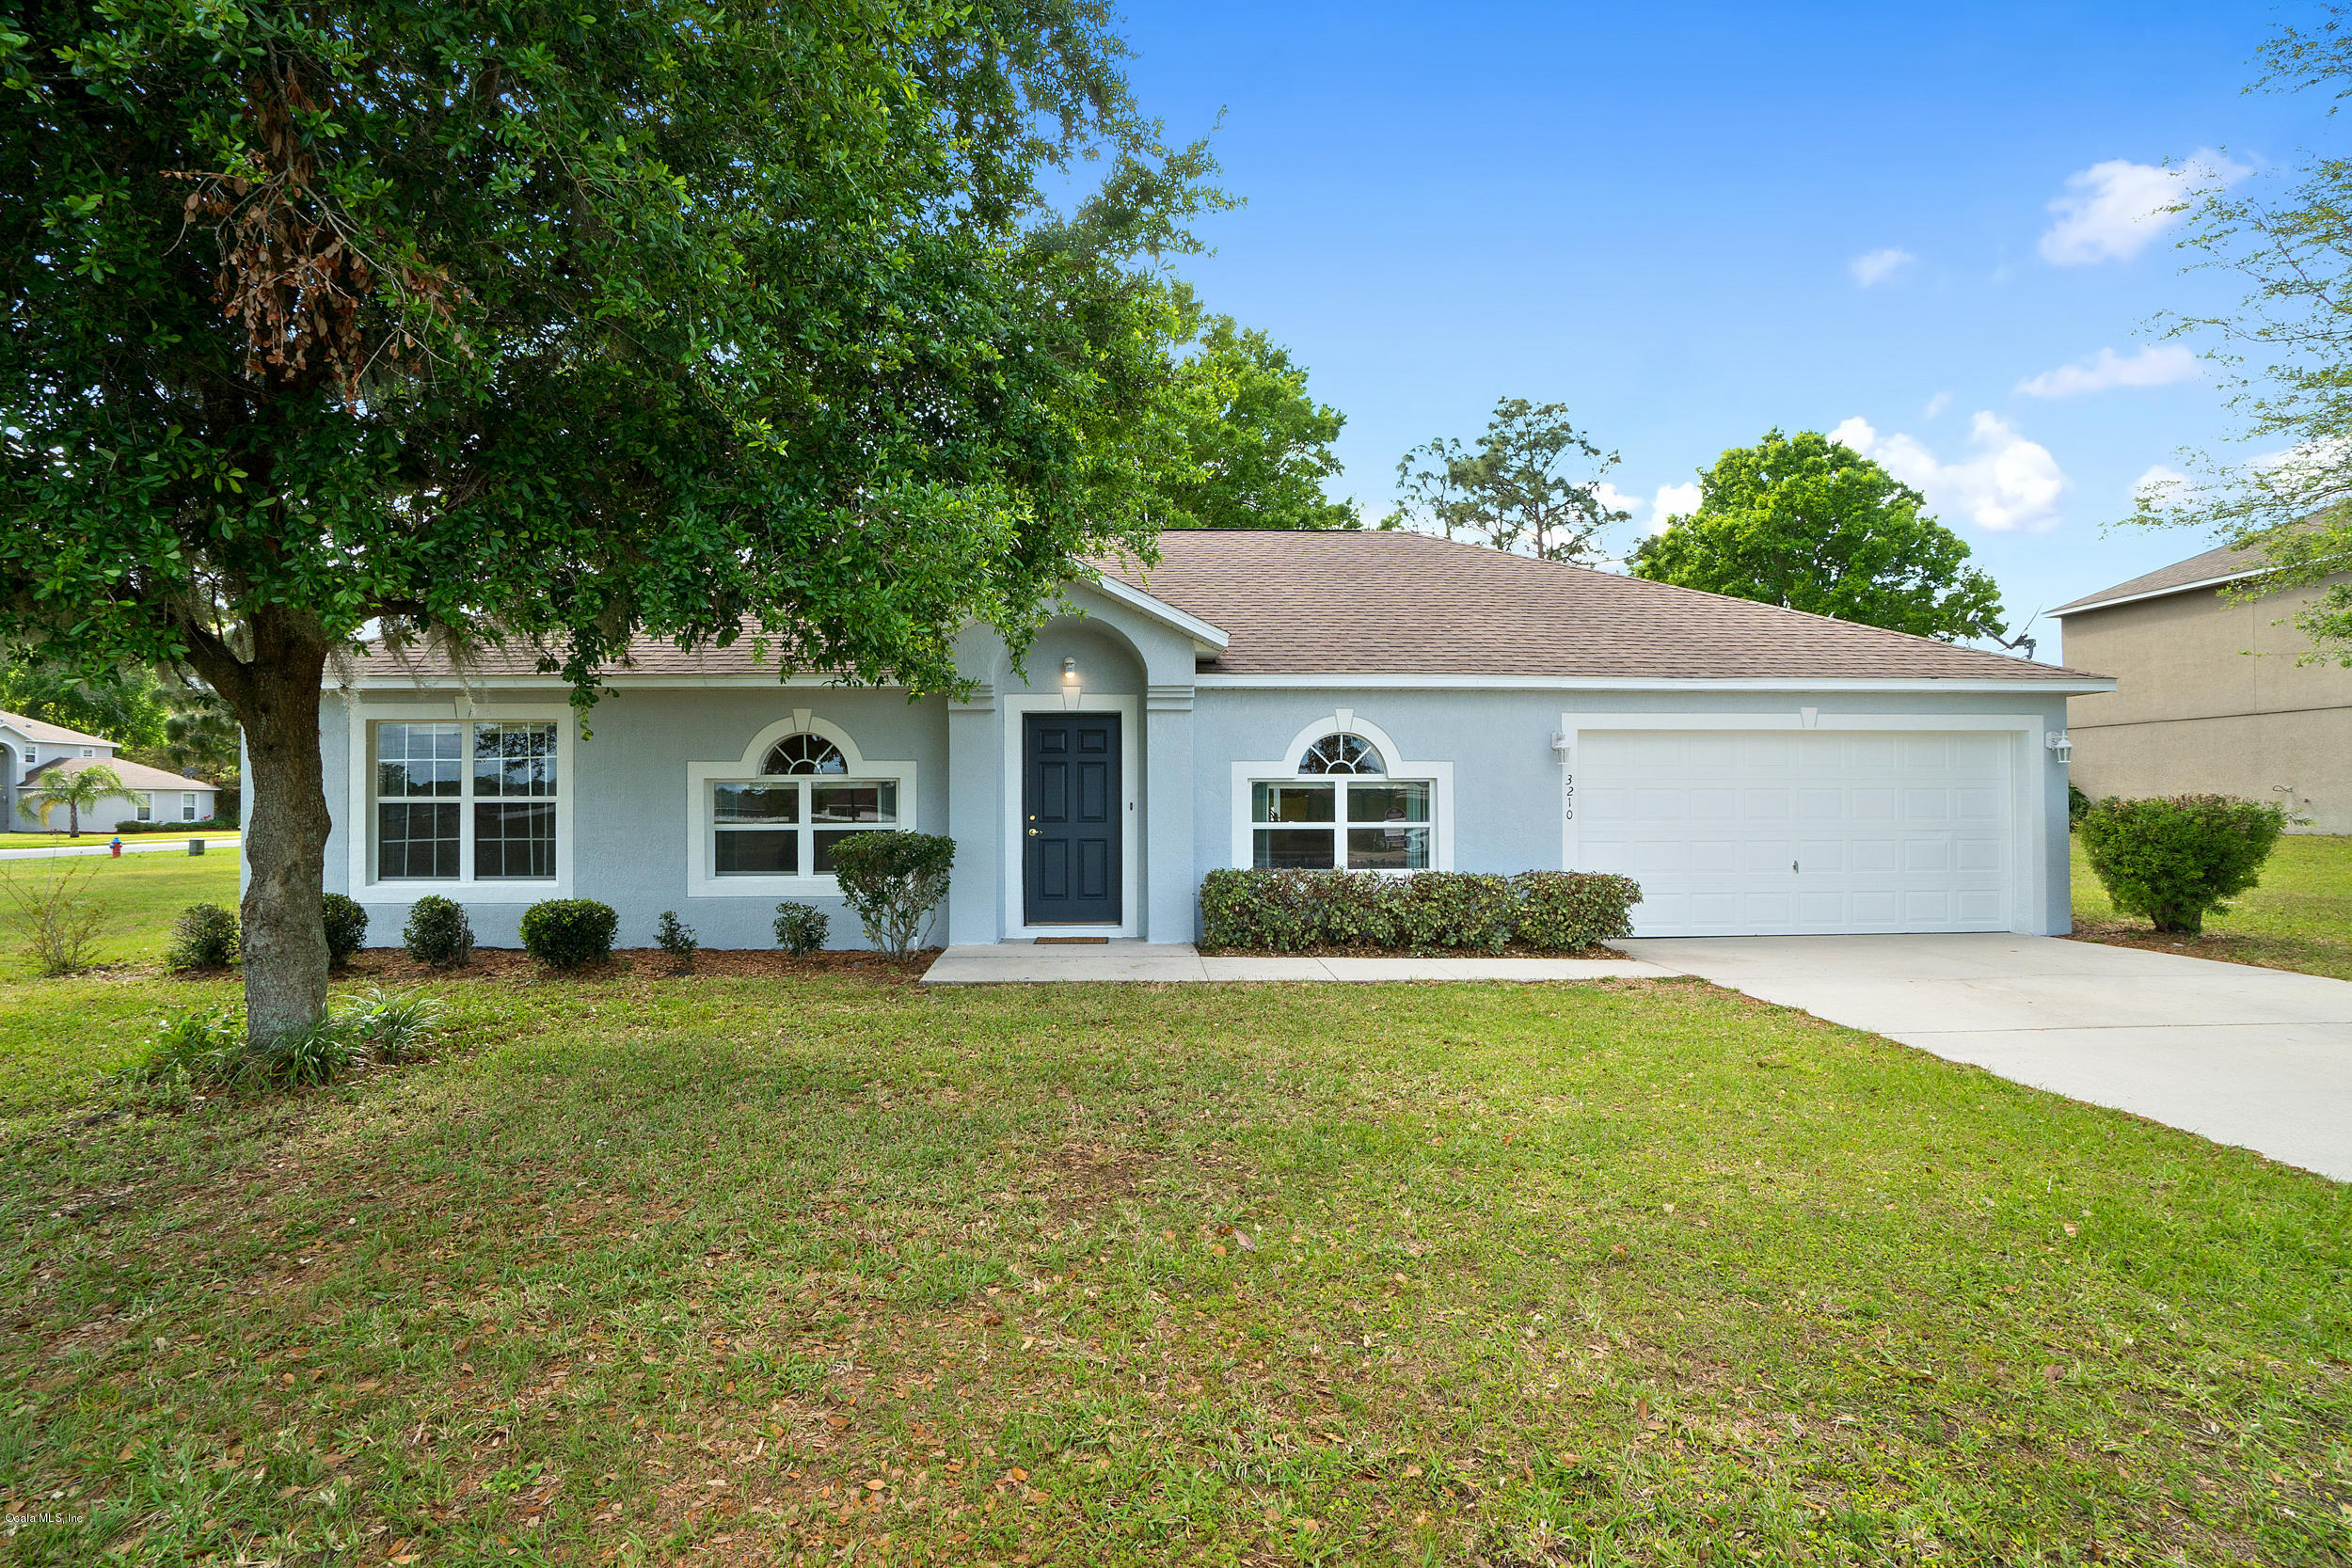 3210 SE 46TH AVENUE, OCALA, FL 34480